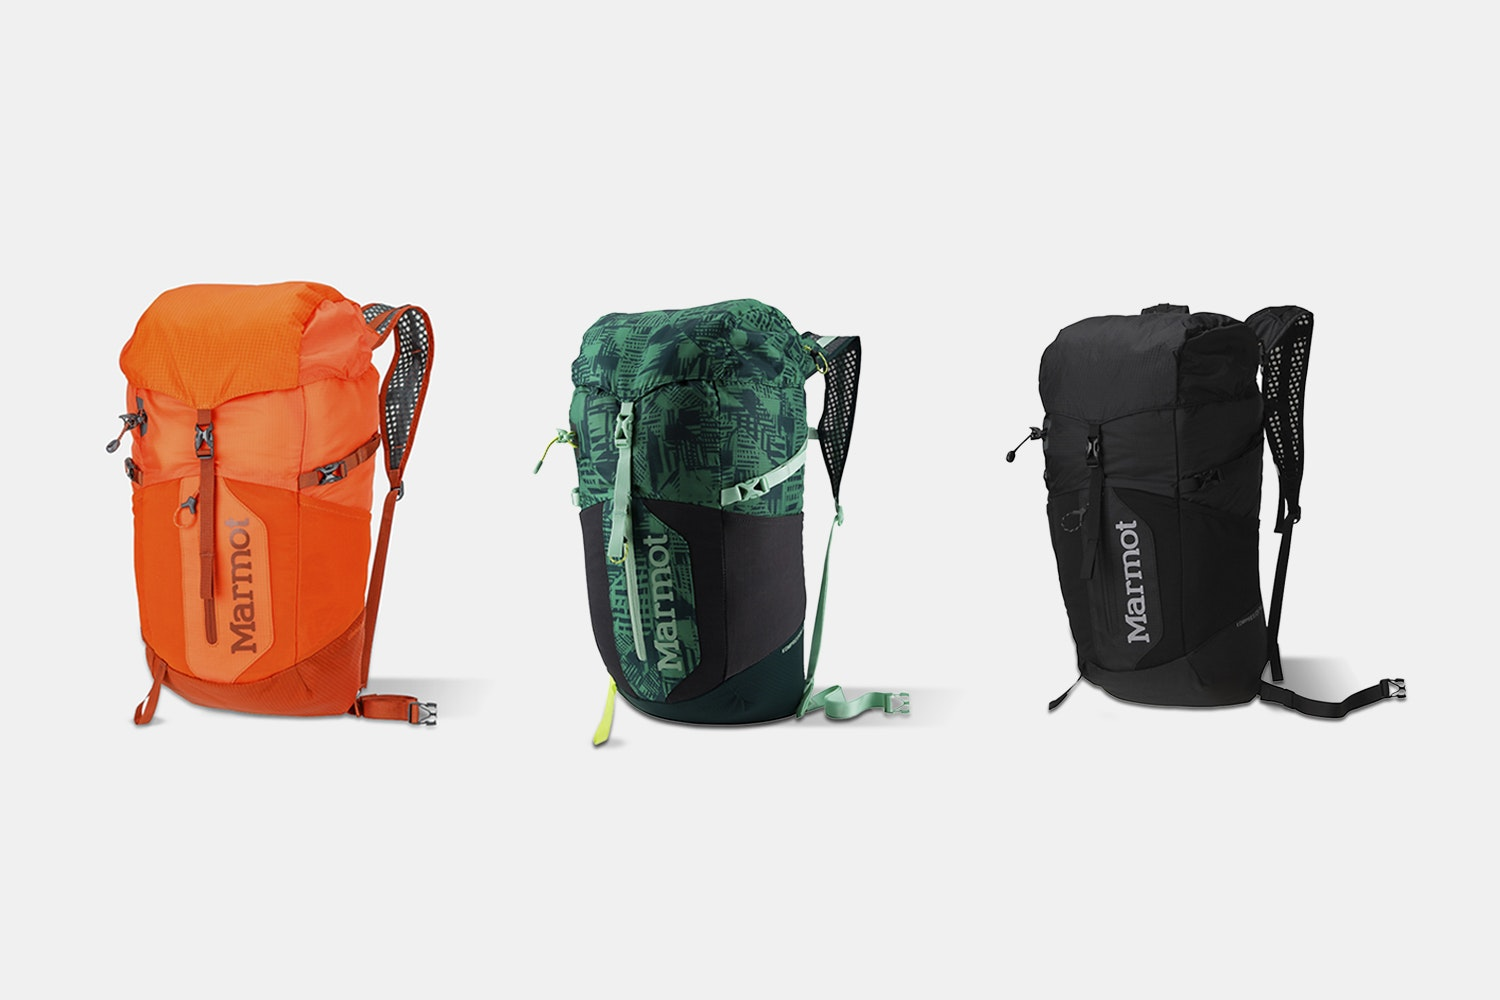 Marmot Kompressor Plus & Star Backpacks